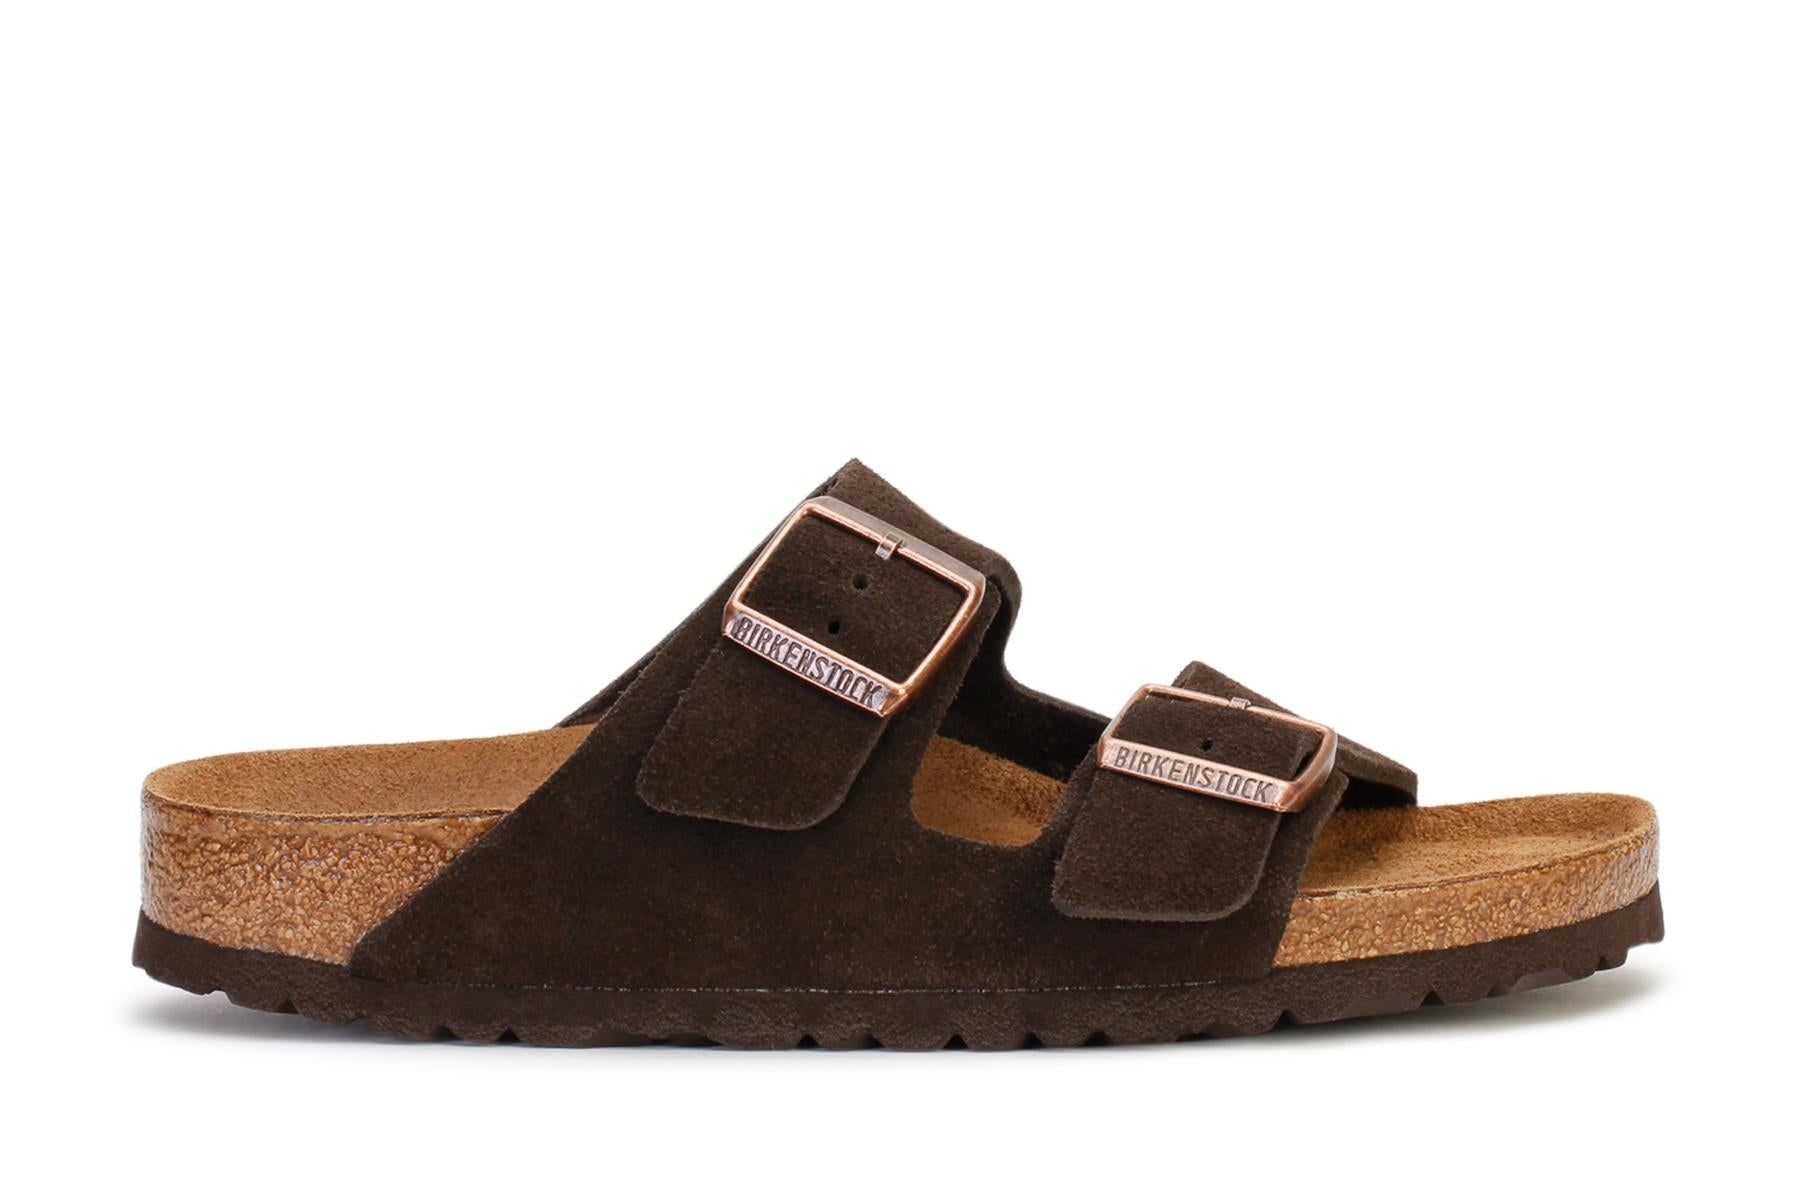 Birkenstock Men's Slide Sandals Arizona Soft Footbed Mocha Suede 951311